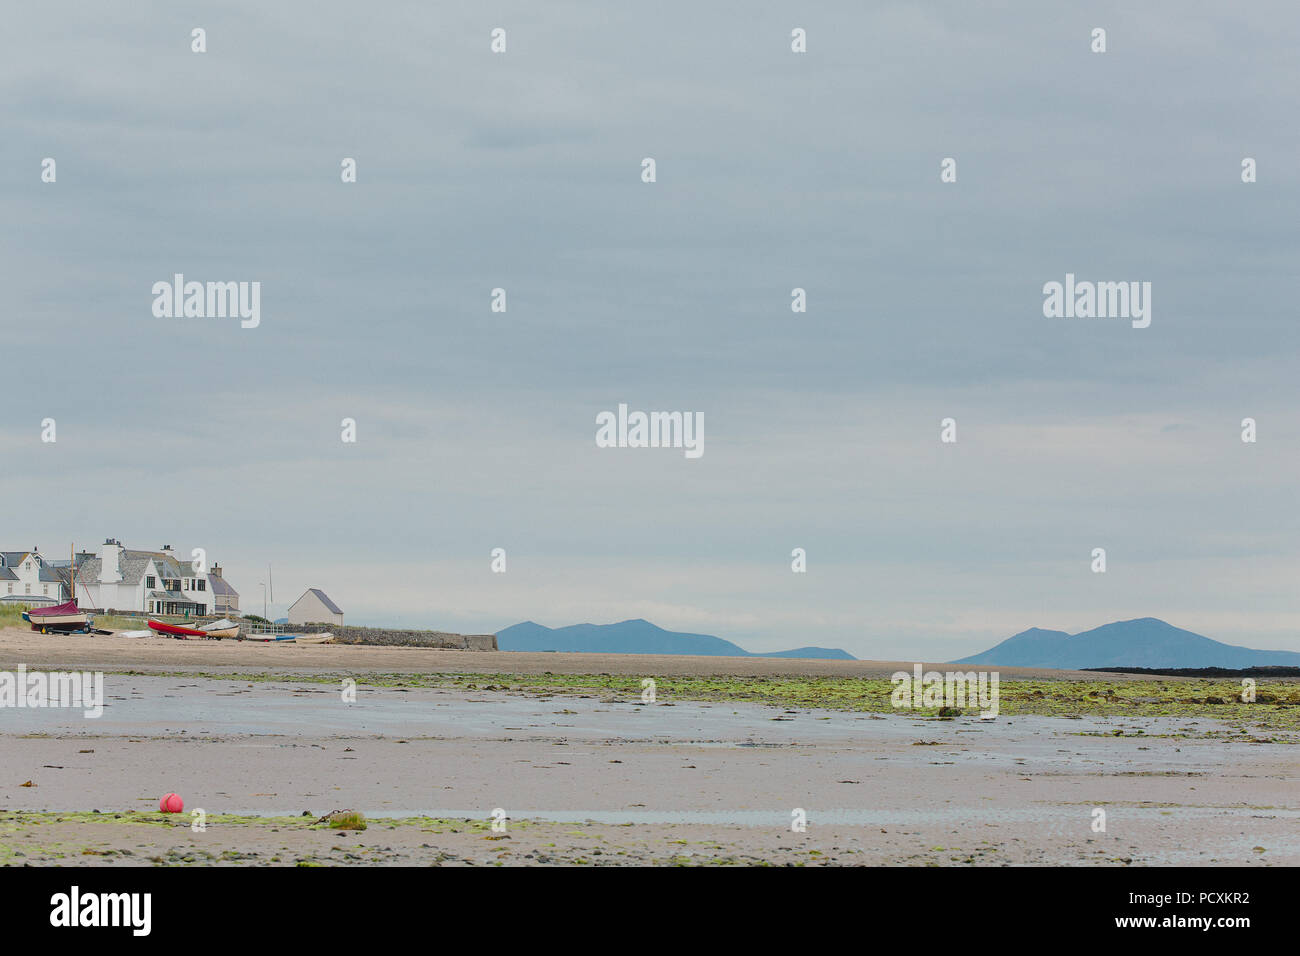 View across Traeth Cridyll (Rhosneigr family beach, Boating Beach), Anglesey, North Wales towards the Llyn Peninsula, - Stock Image